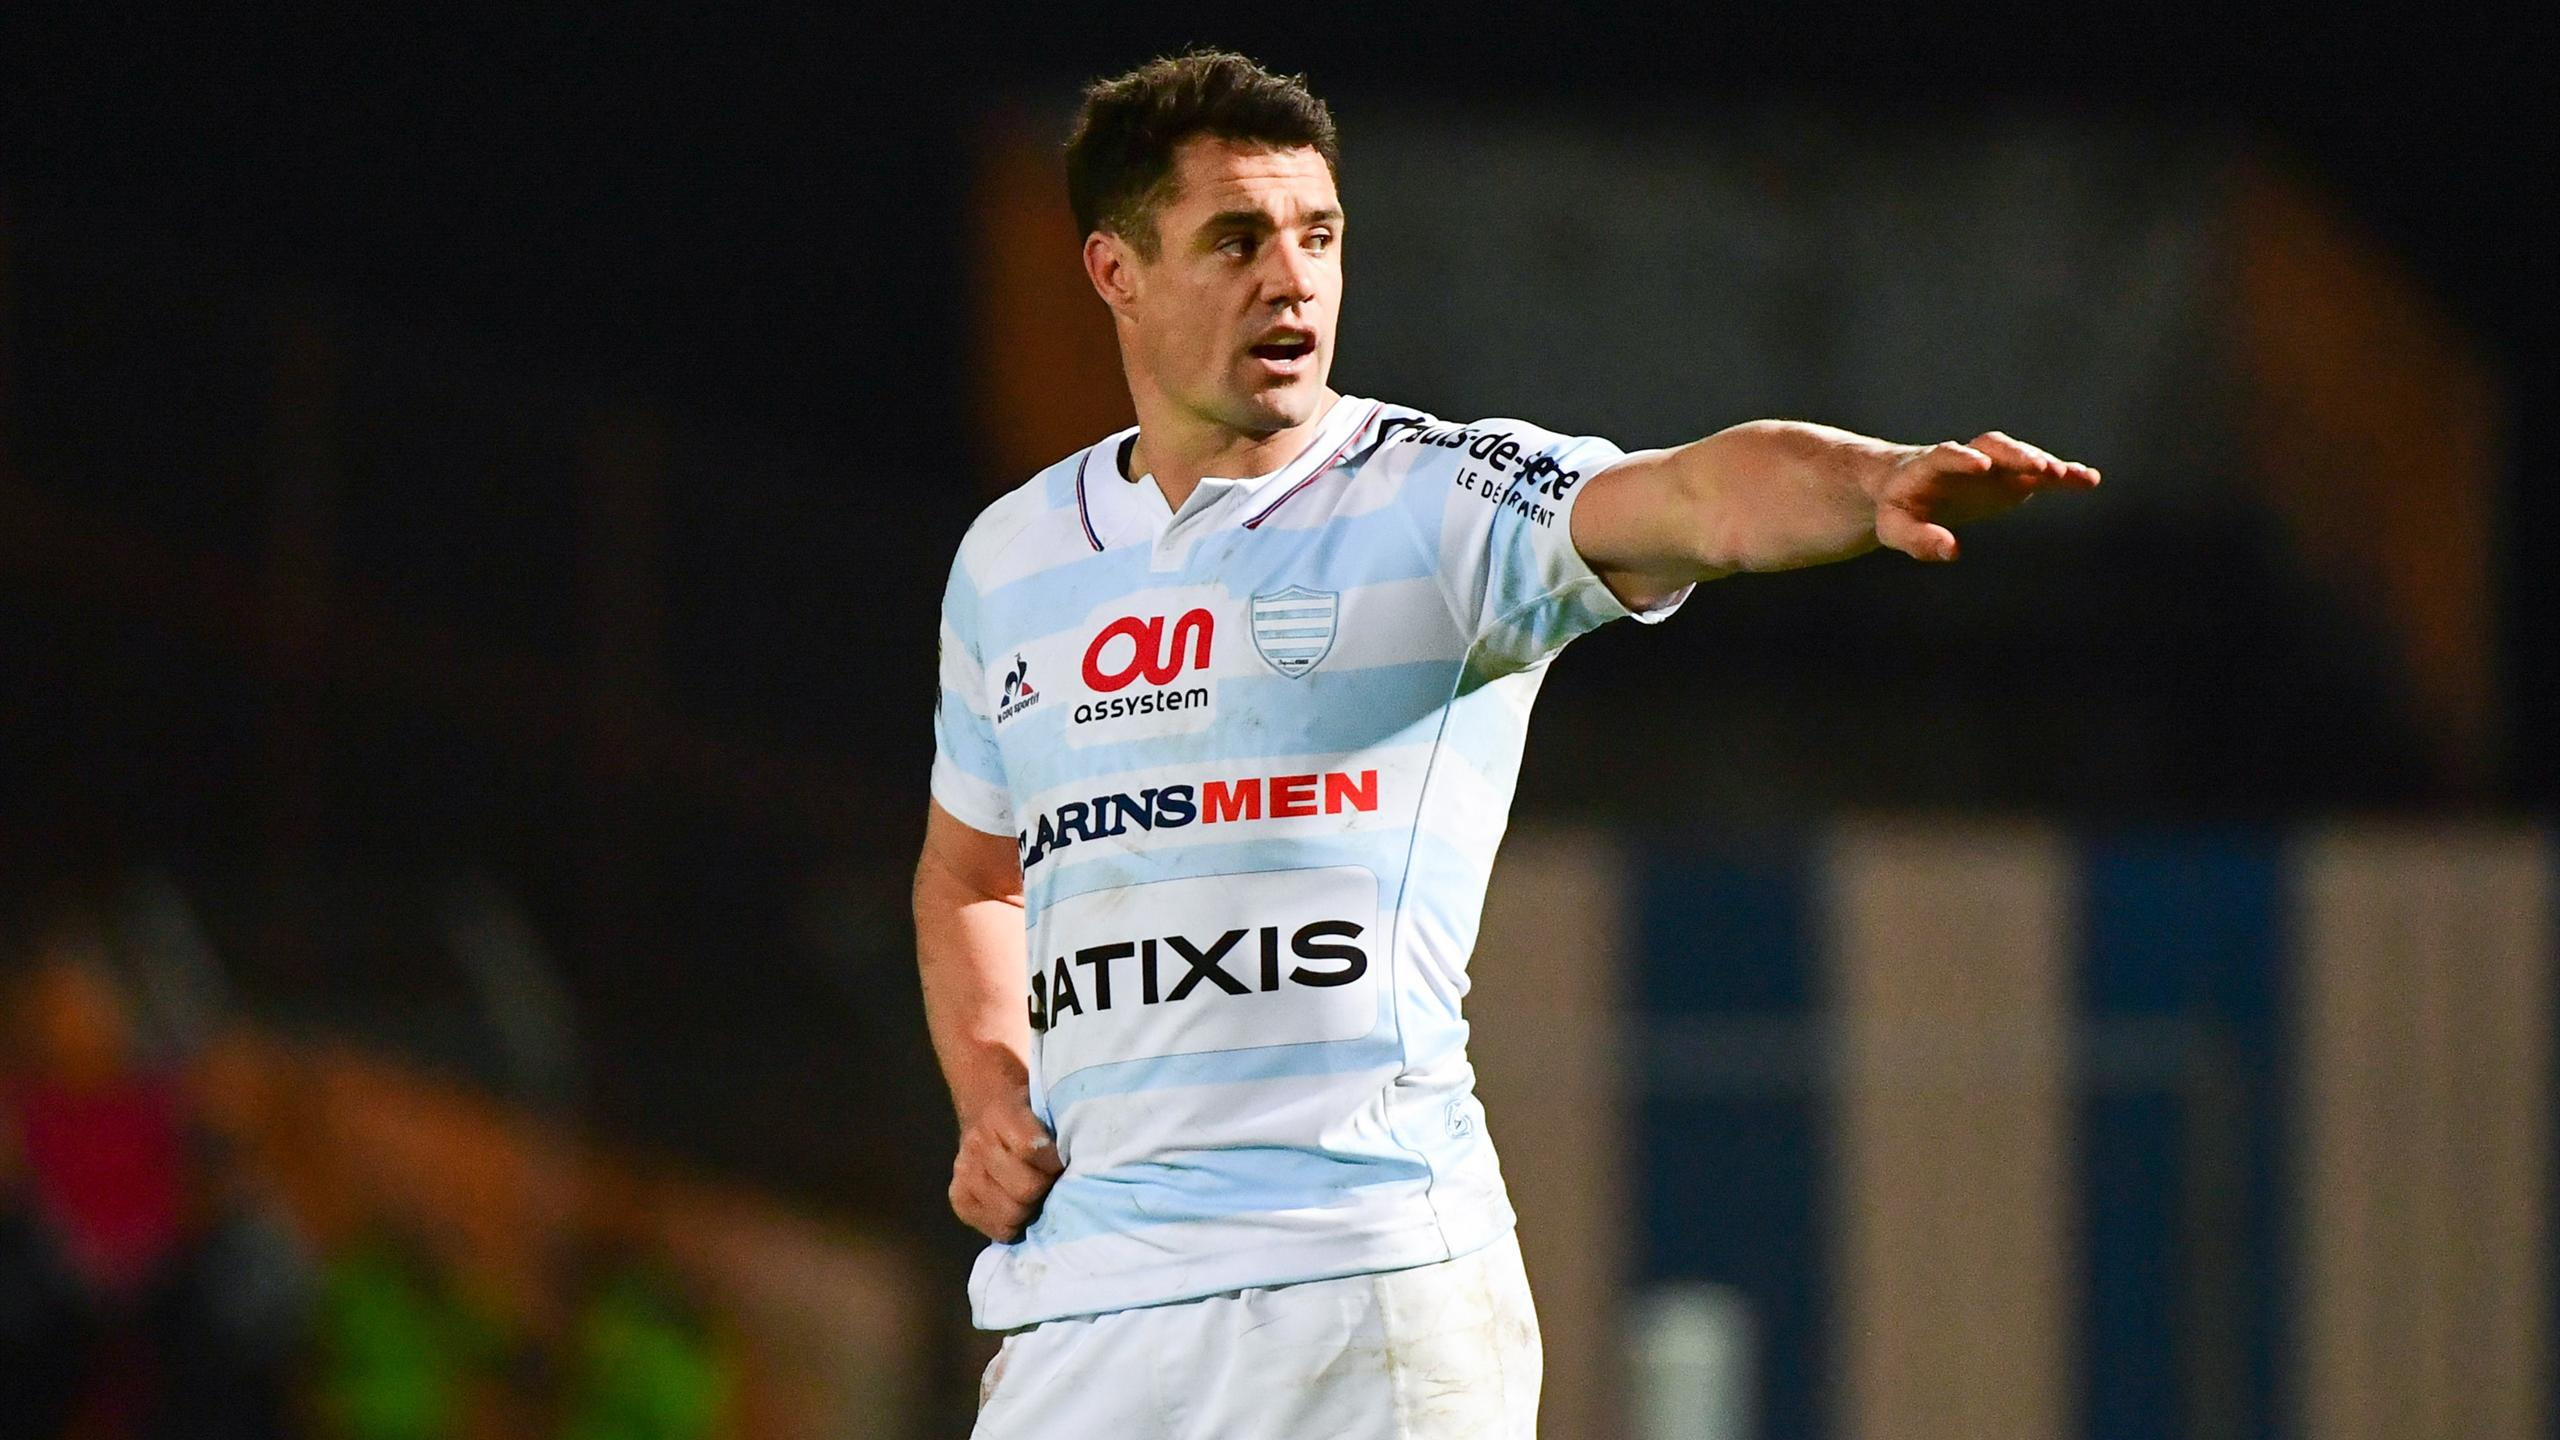 Dan Carter (Racing 92) - décembre 2016